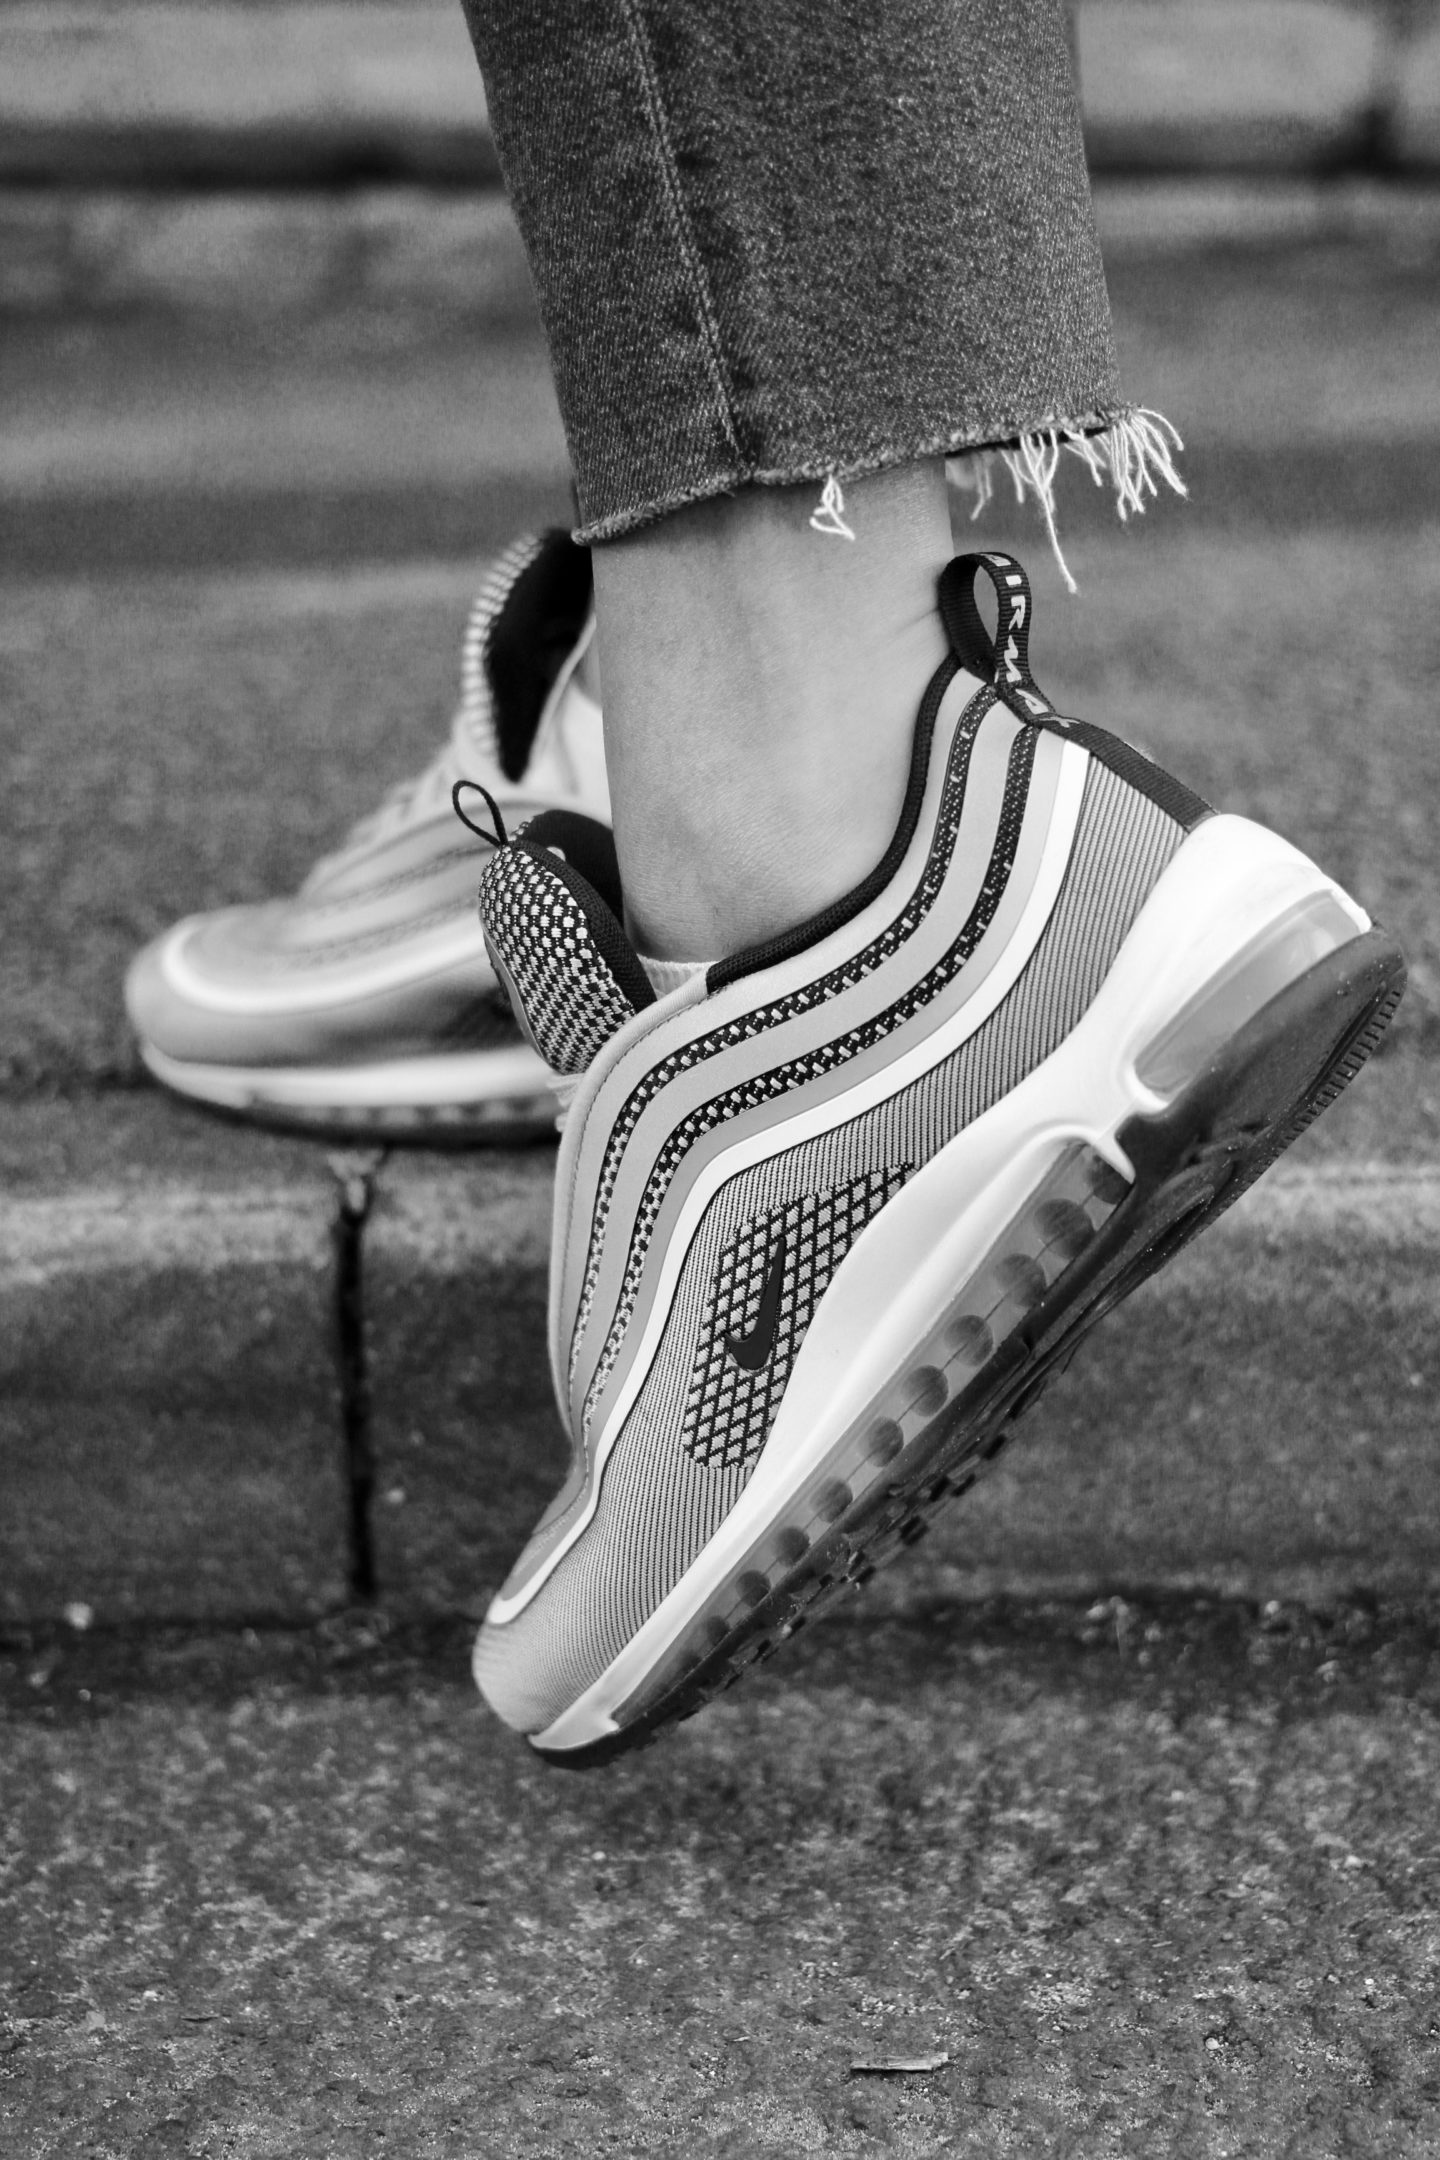 Nike Silver Bullet Air Max 97 Trainers